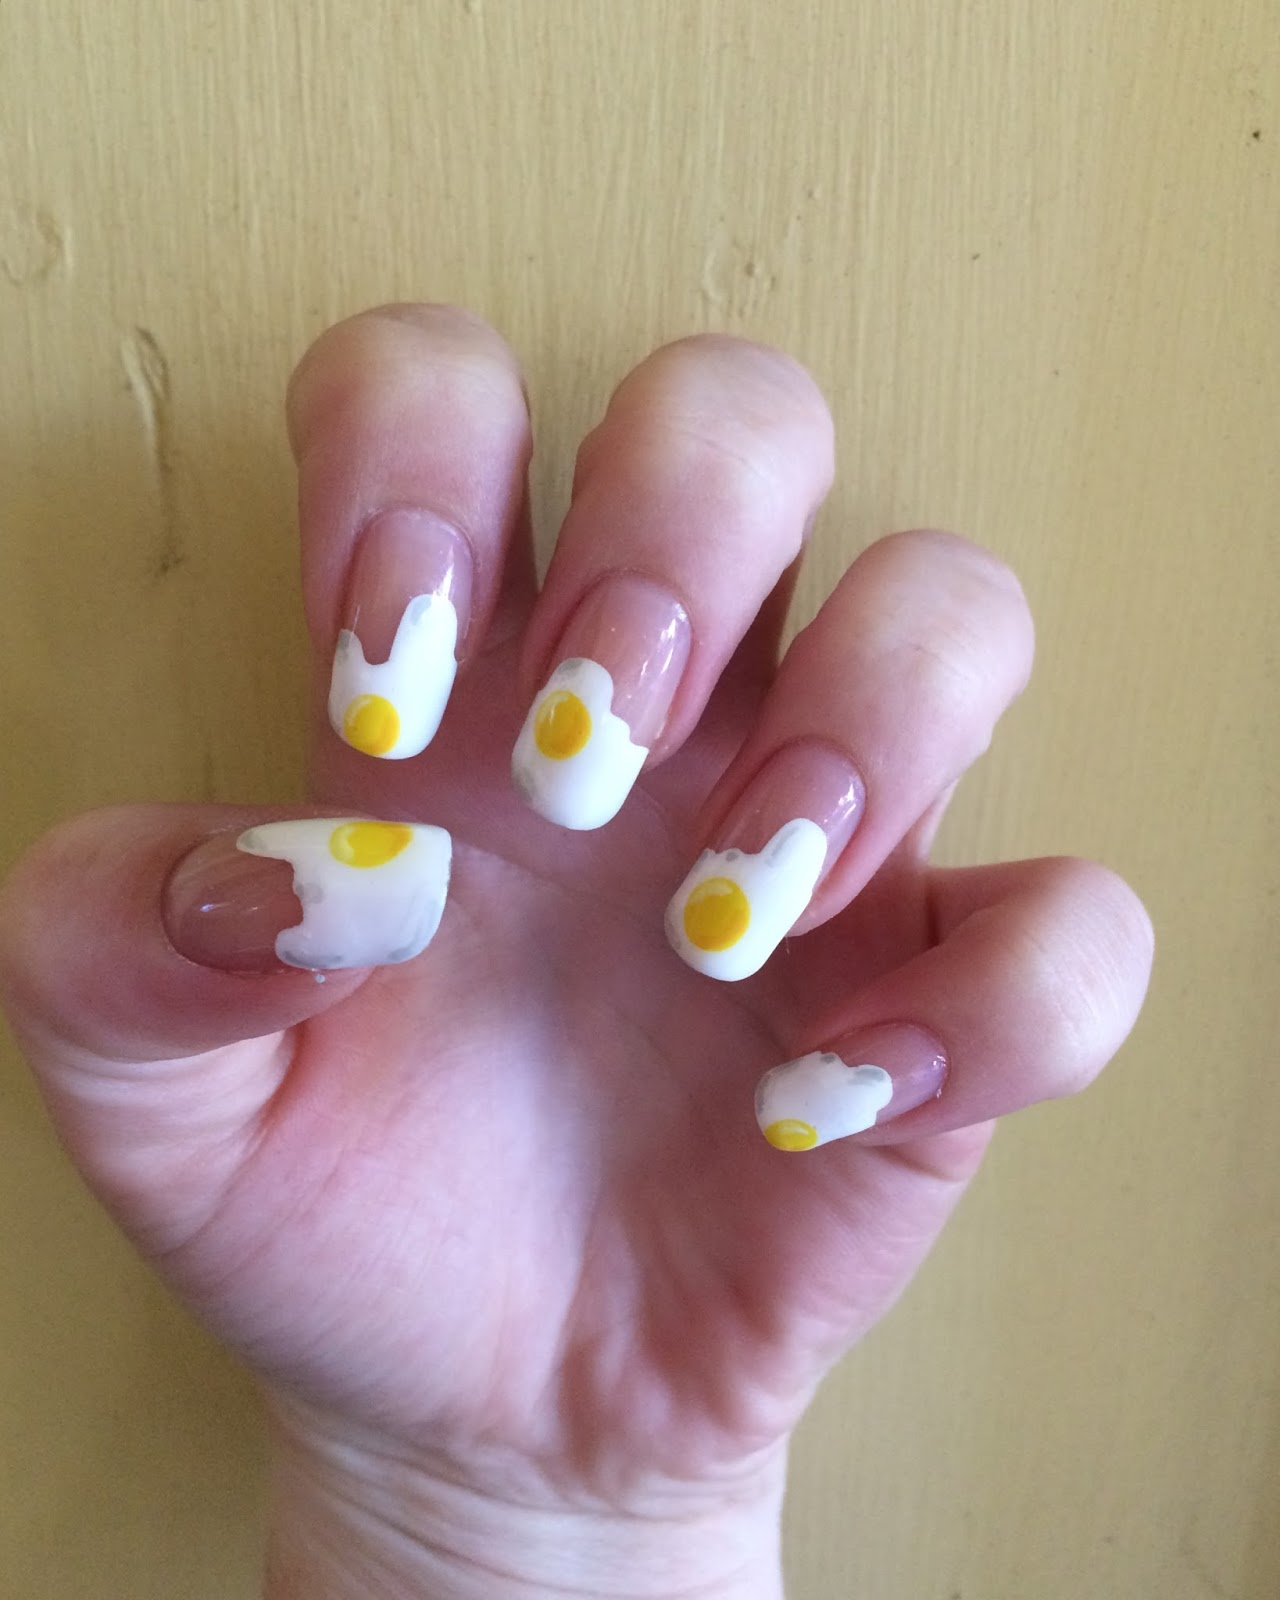 Food-Themed Nail Art That's So Realistic You'll Try To Eat